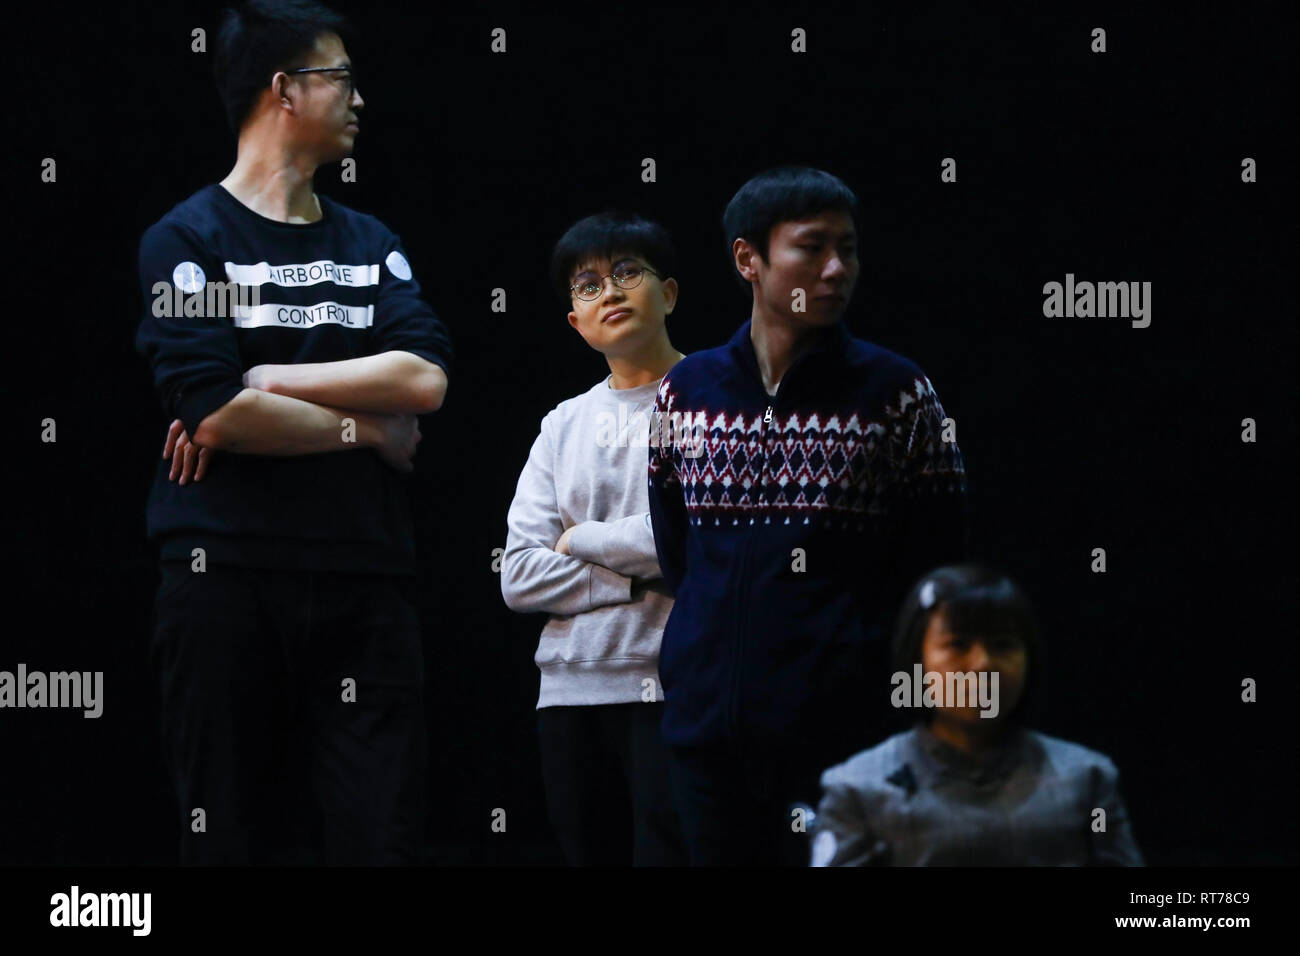 (190228) -- BEIJING, Feb. 28, 2019 (Xinhua) -- Rare disease patients rehearse during an acting workshop for 'Rare Hug', a drama on rare diseases, at Beijing Tianqiao Performance Arts Center in Beijing, capital of China, Feb. 22, 2019. 'Rare Hug,' a Chinese drama on rare diseases, was staged at the Beijing Tianqiao Performing Arts Center Wednesday evening to mark the 12th Rare Disease Day, which falls on Feb. 28, 2019 under the theme 'Bridging Health and Social Care.'     The drama was played by rare disease patients in collaboration with their relatives. Assisted by two volunteer directors, th - Stock Image